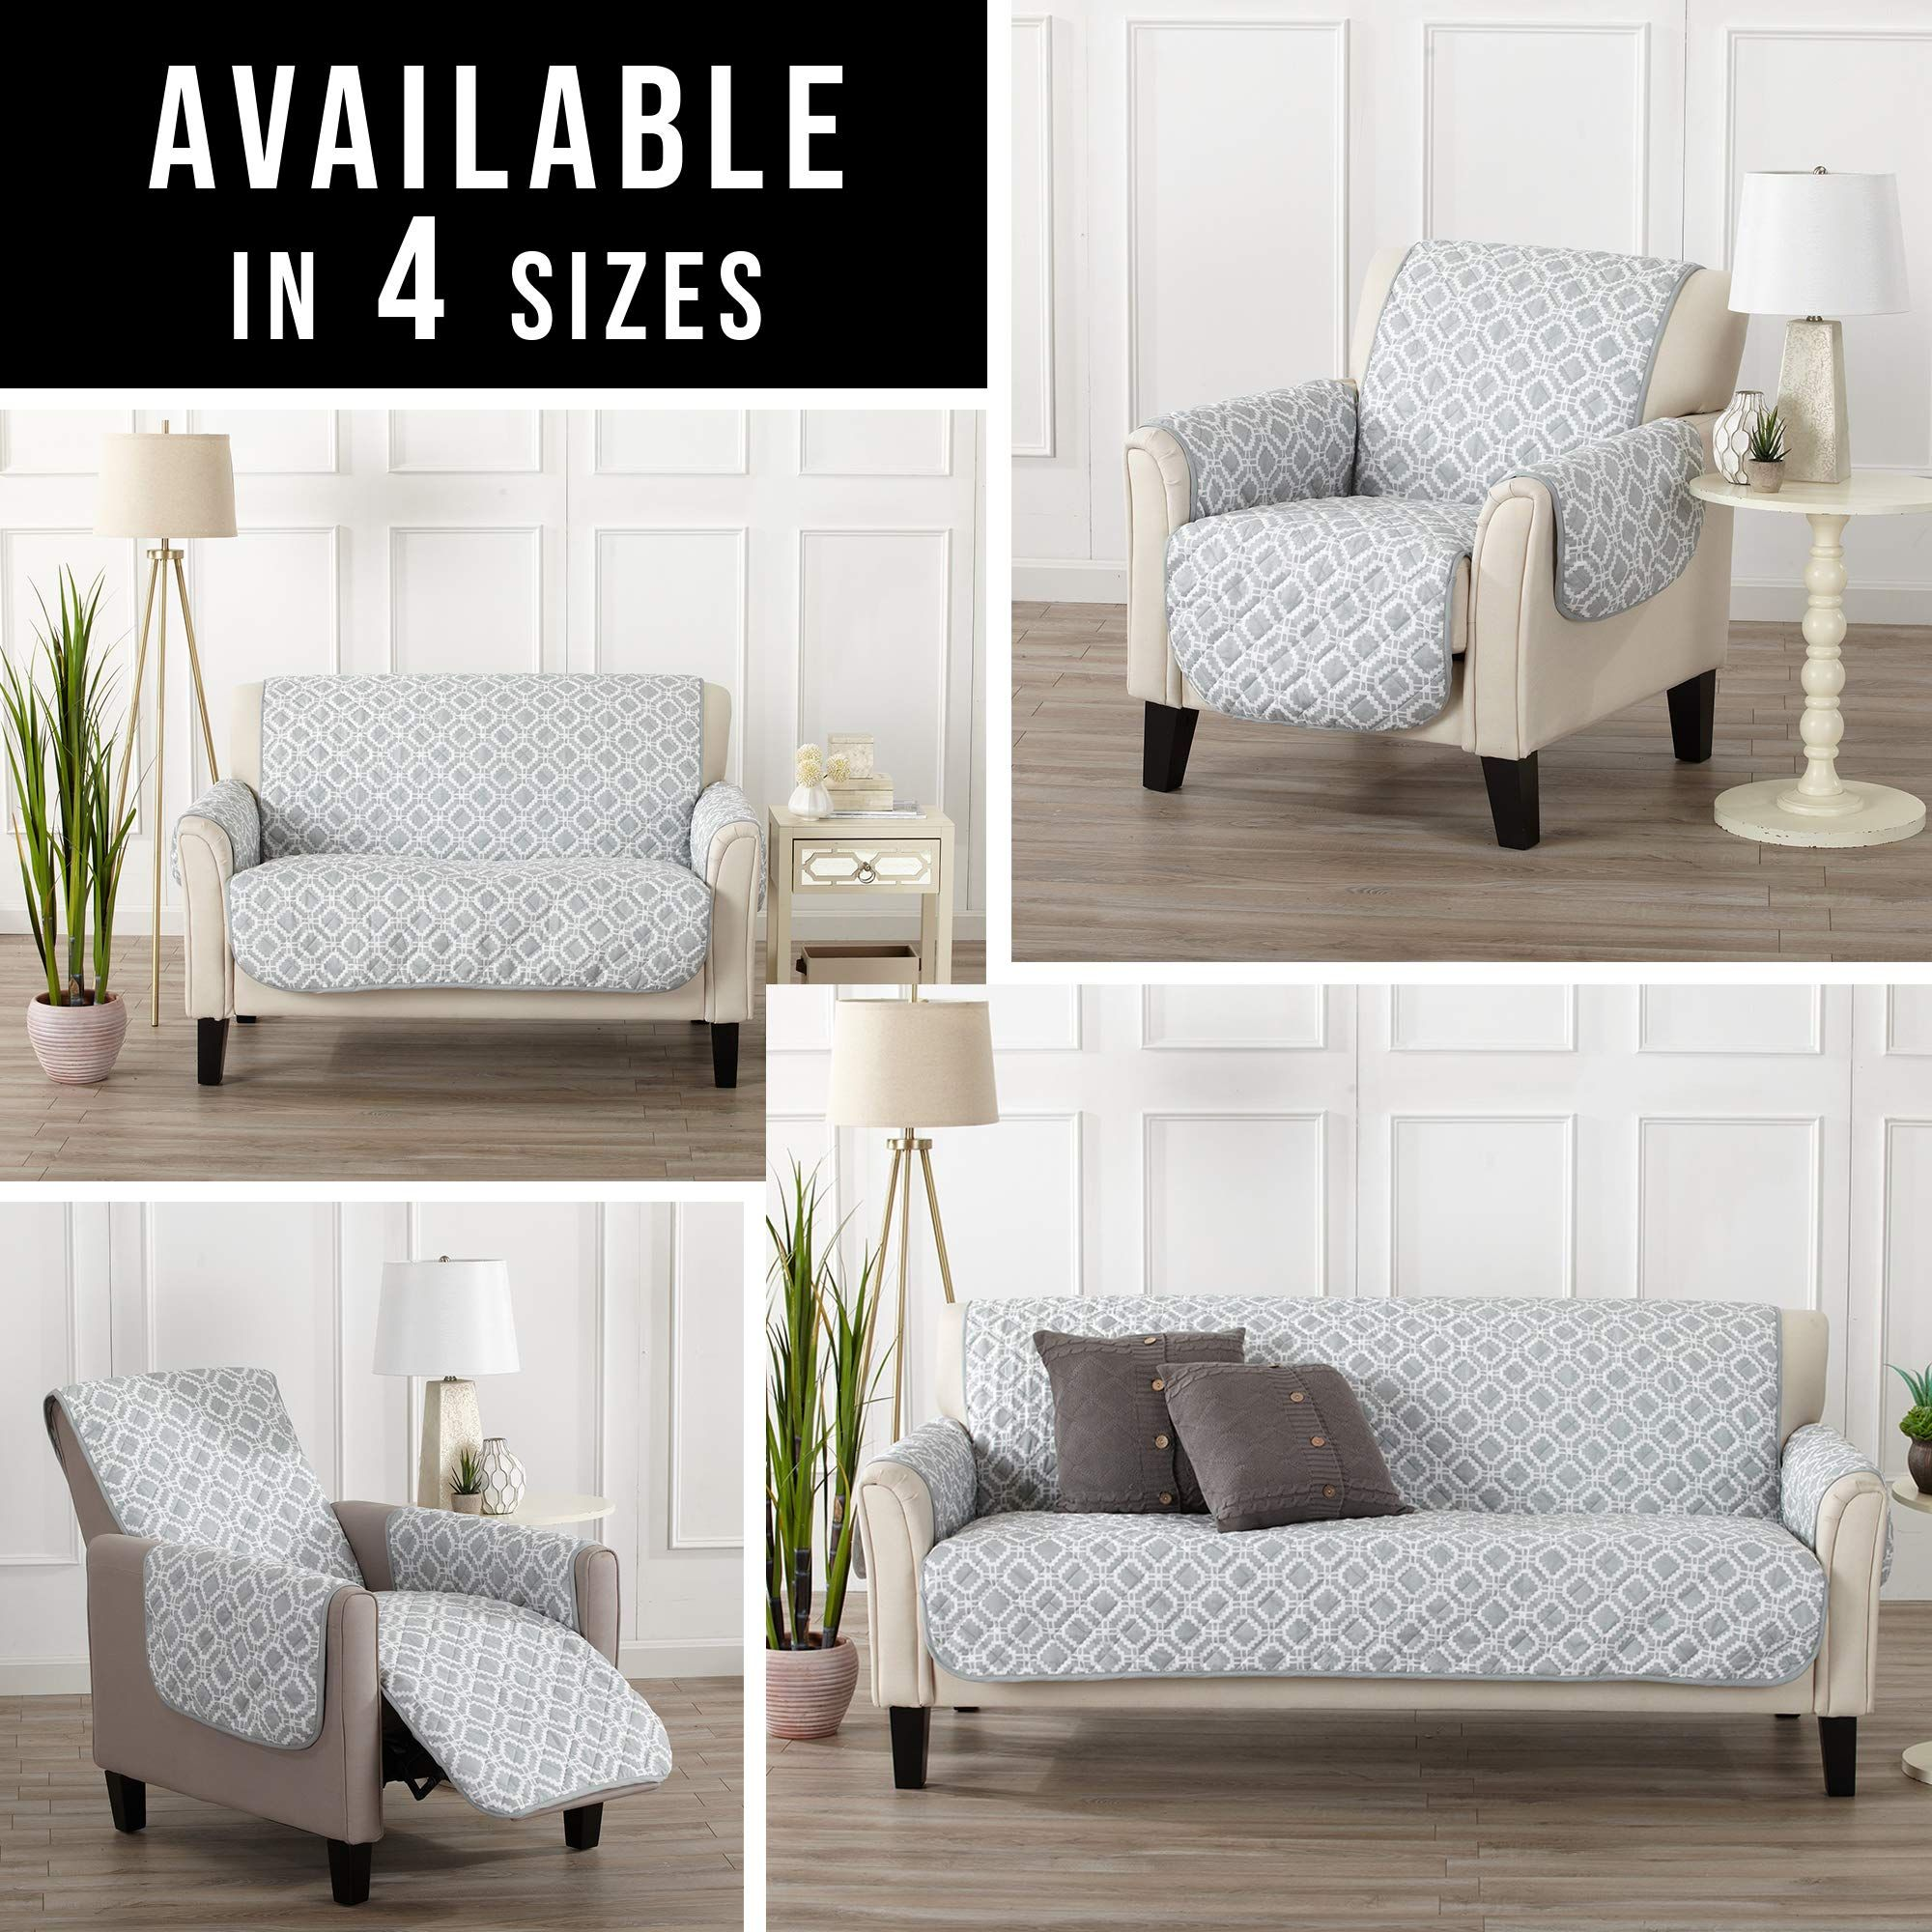 Reversible Couch Cover For 3 Cushion Couch Printed Sofa Covers For Living Room With Secure Straps Protect From Kids In 2020 Printed Sofa Couch Covers Sofa Colors #seat #covers #living #room